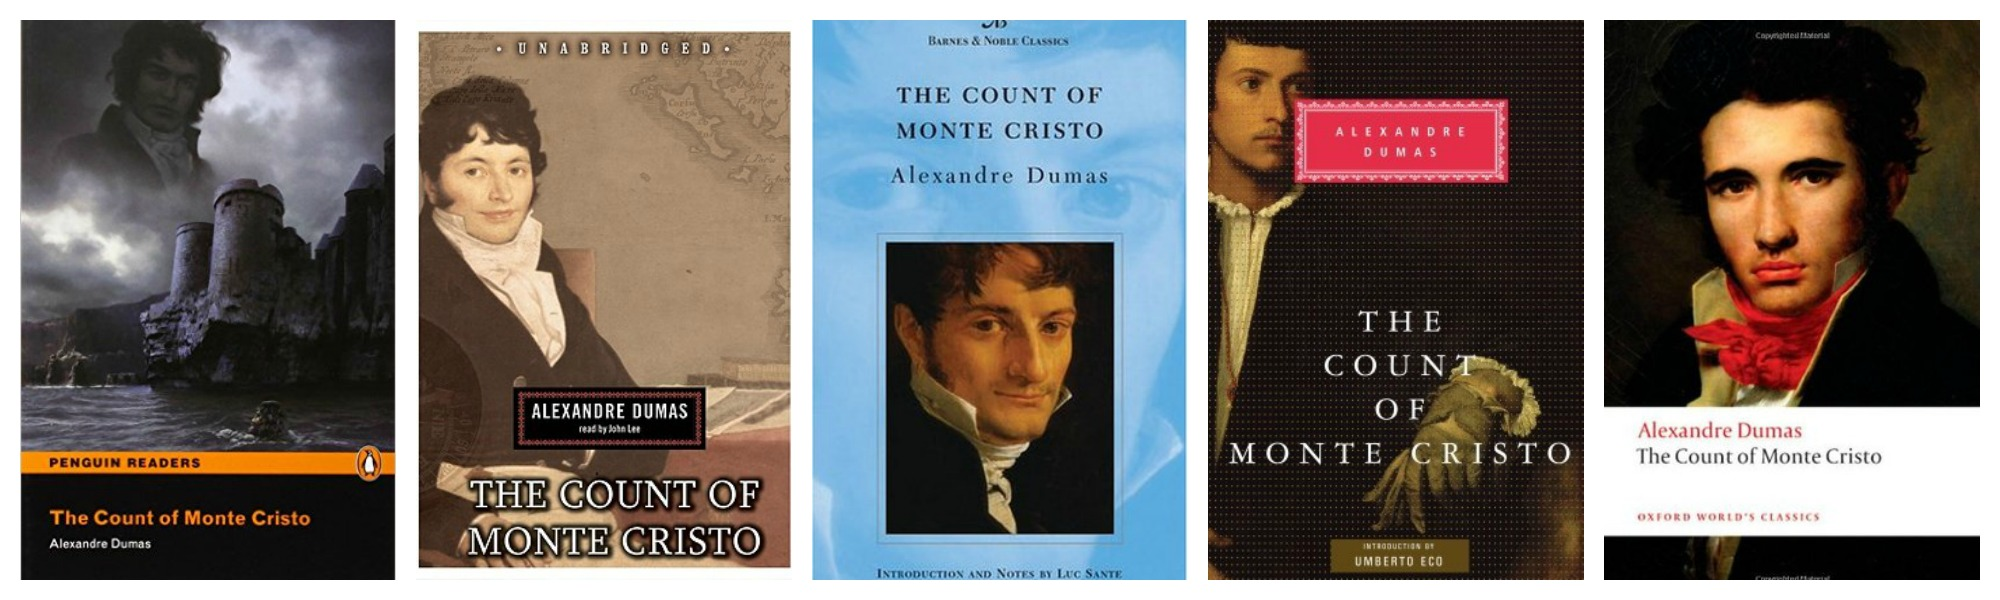 The Count of Monte Cristo Covers 3